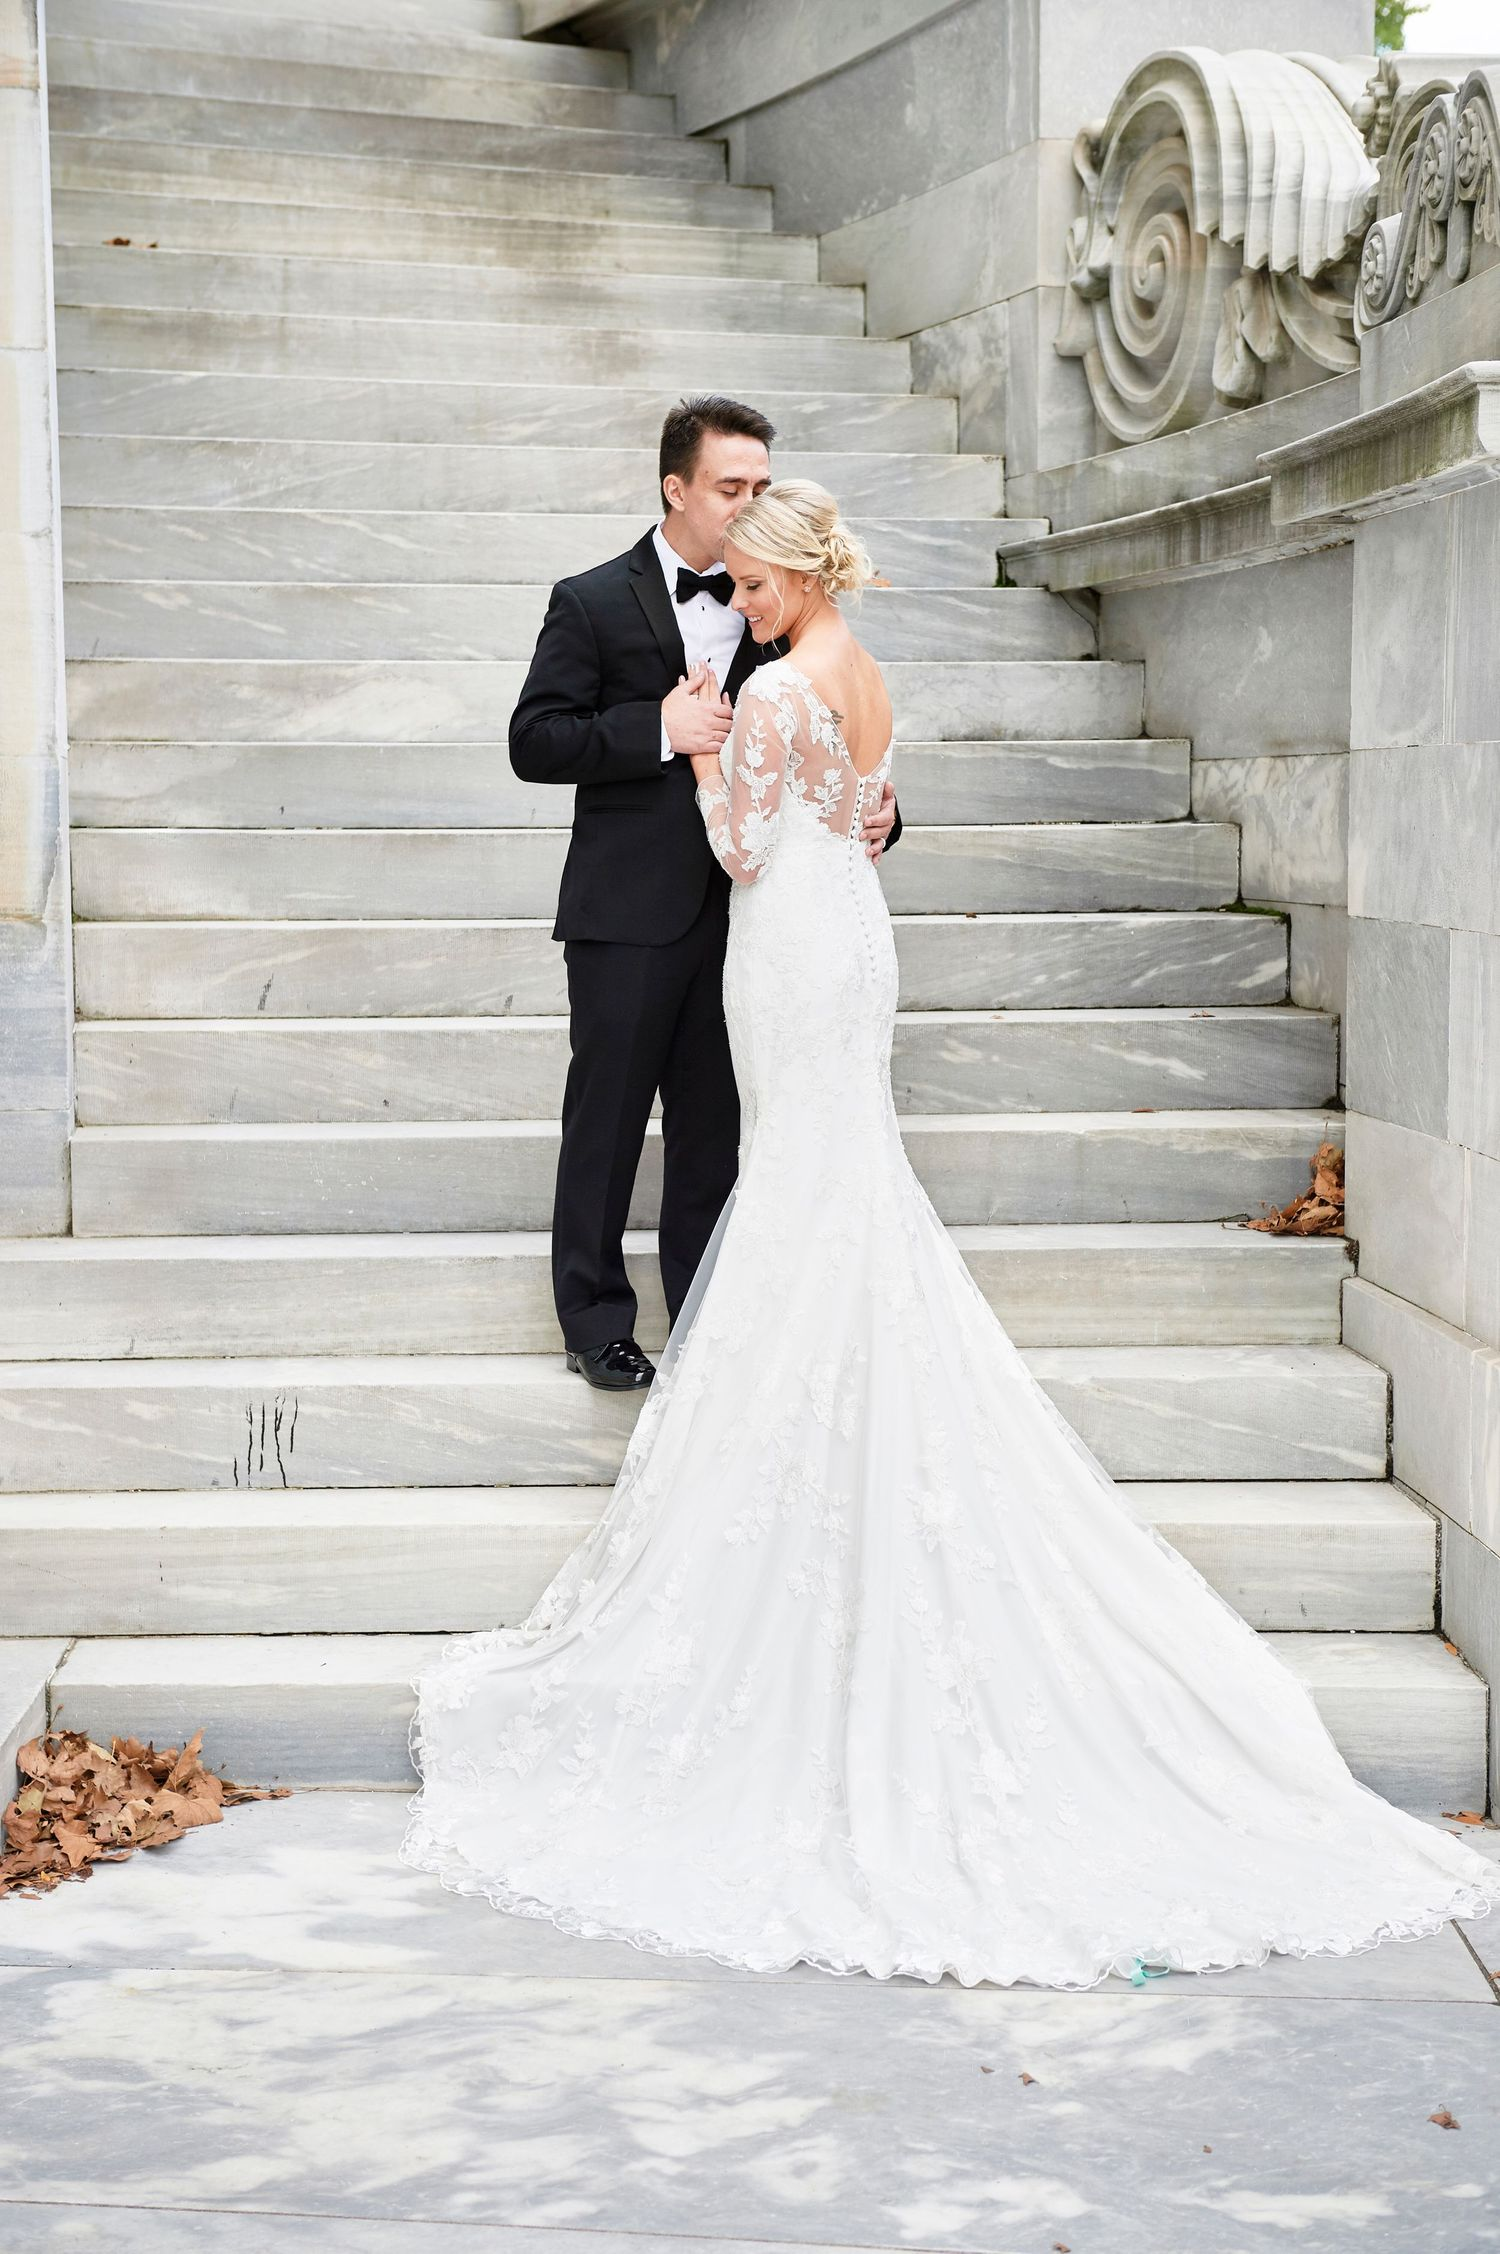 beautiful dress shot with bride and groom standing on stairs wedding photo at merchant exchange building in philadelphia